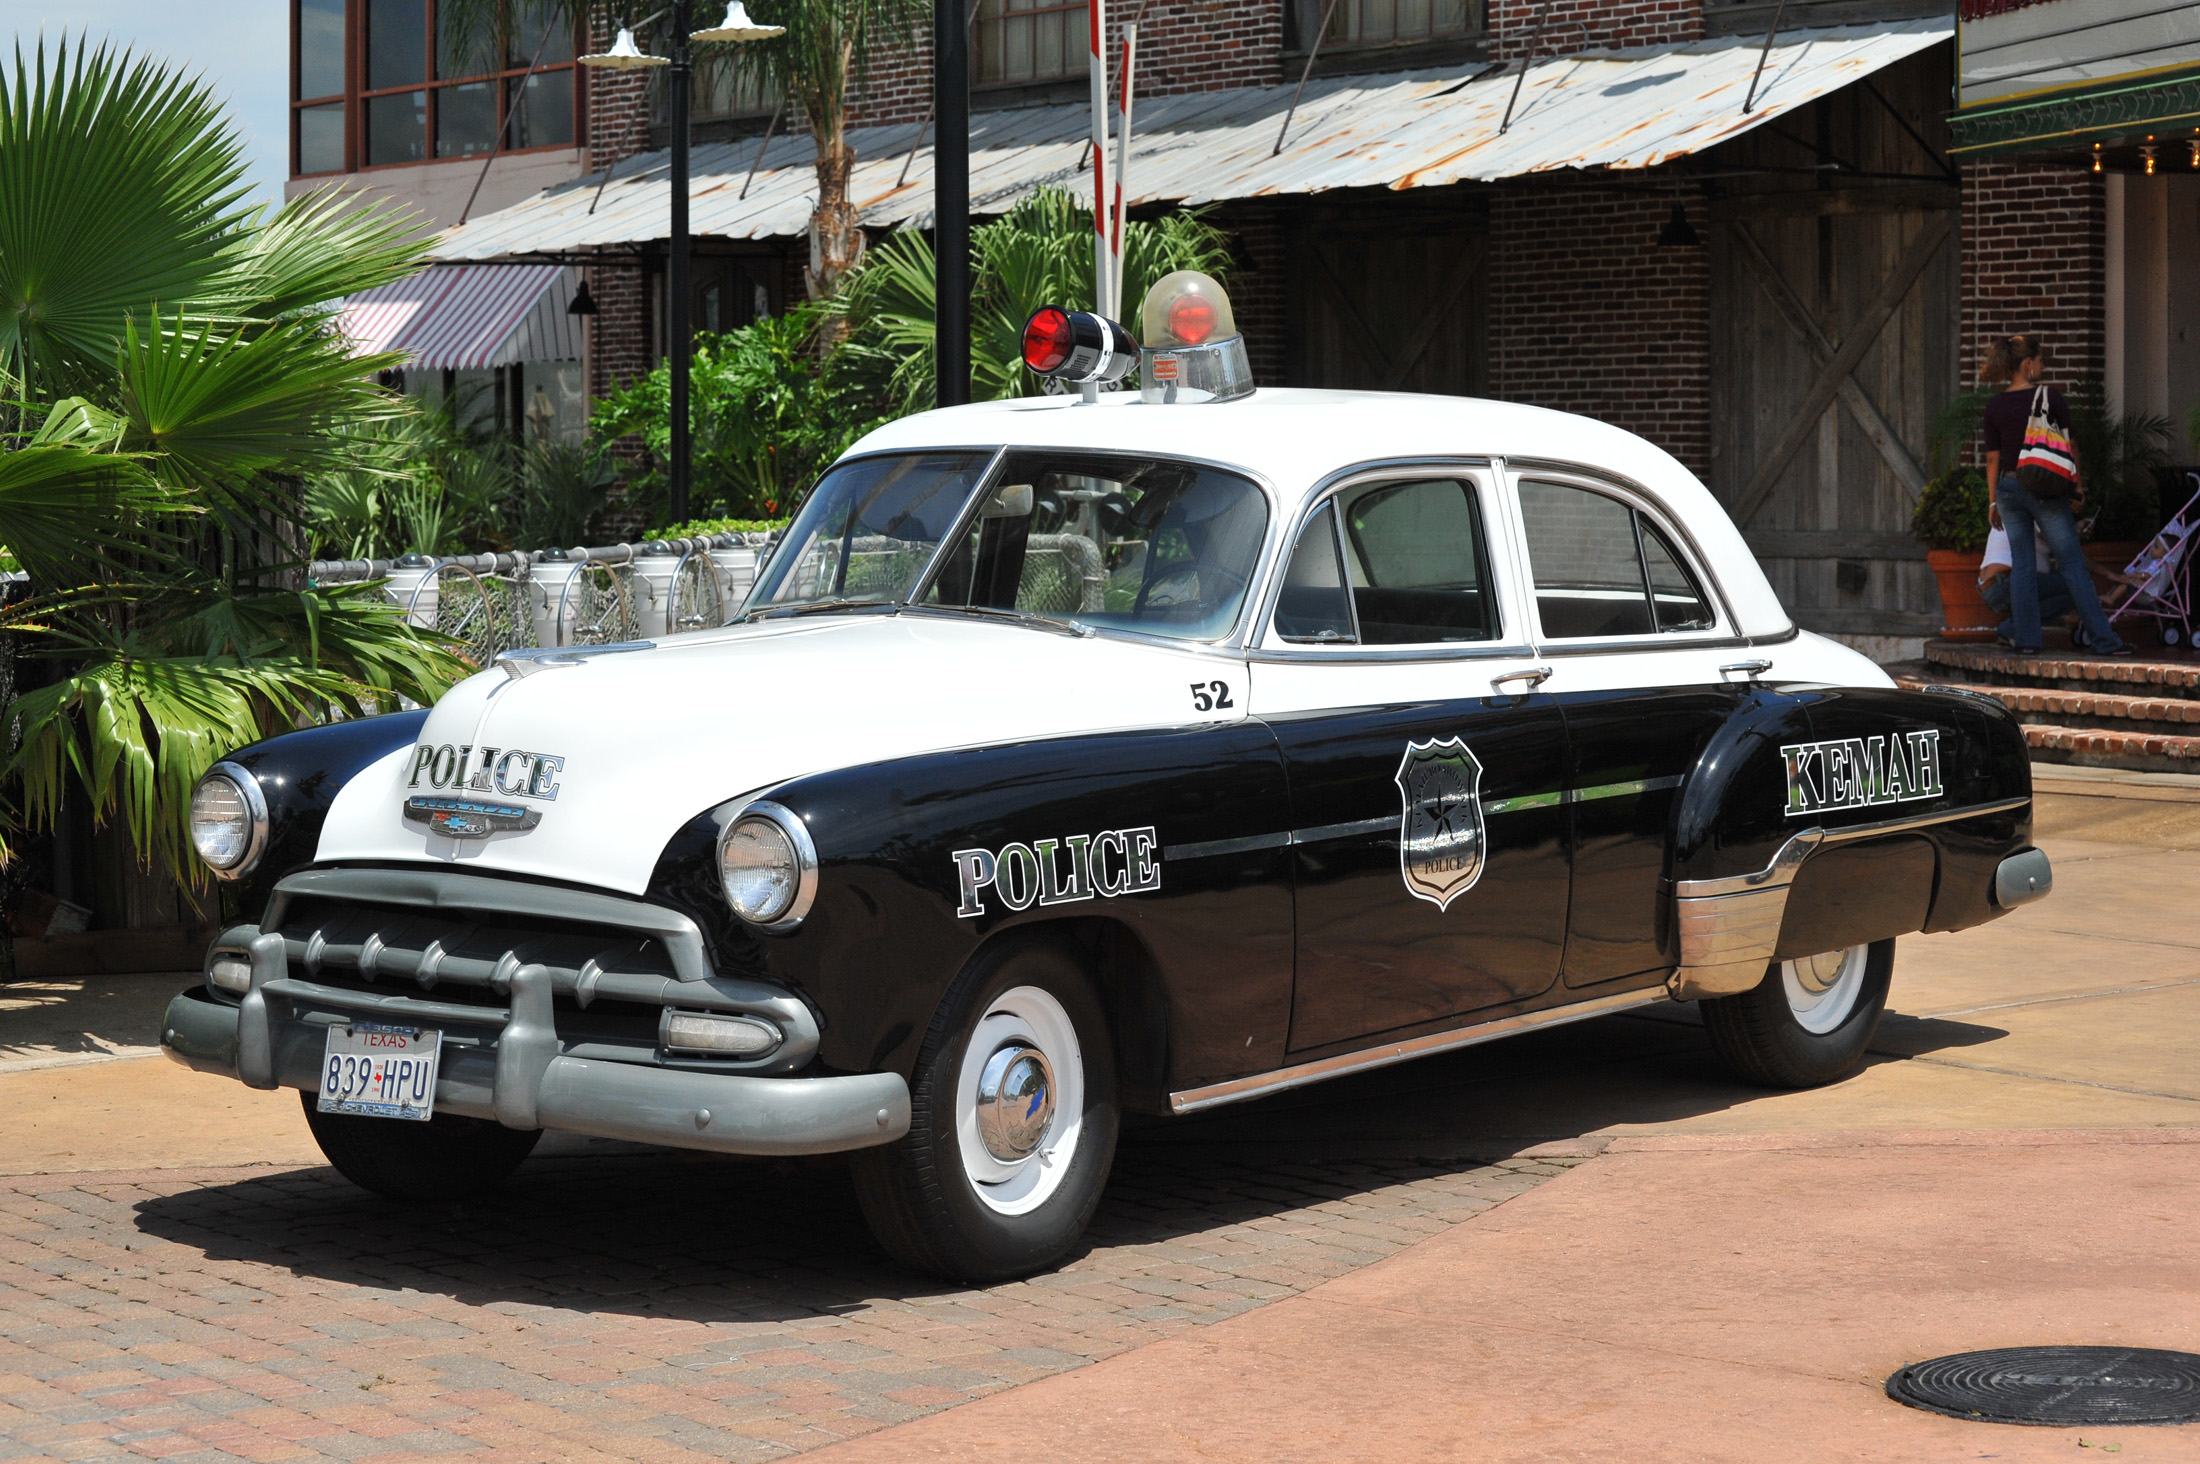 Old Antique Cars For Sale >> File:Old police car in Kemah.jpg